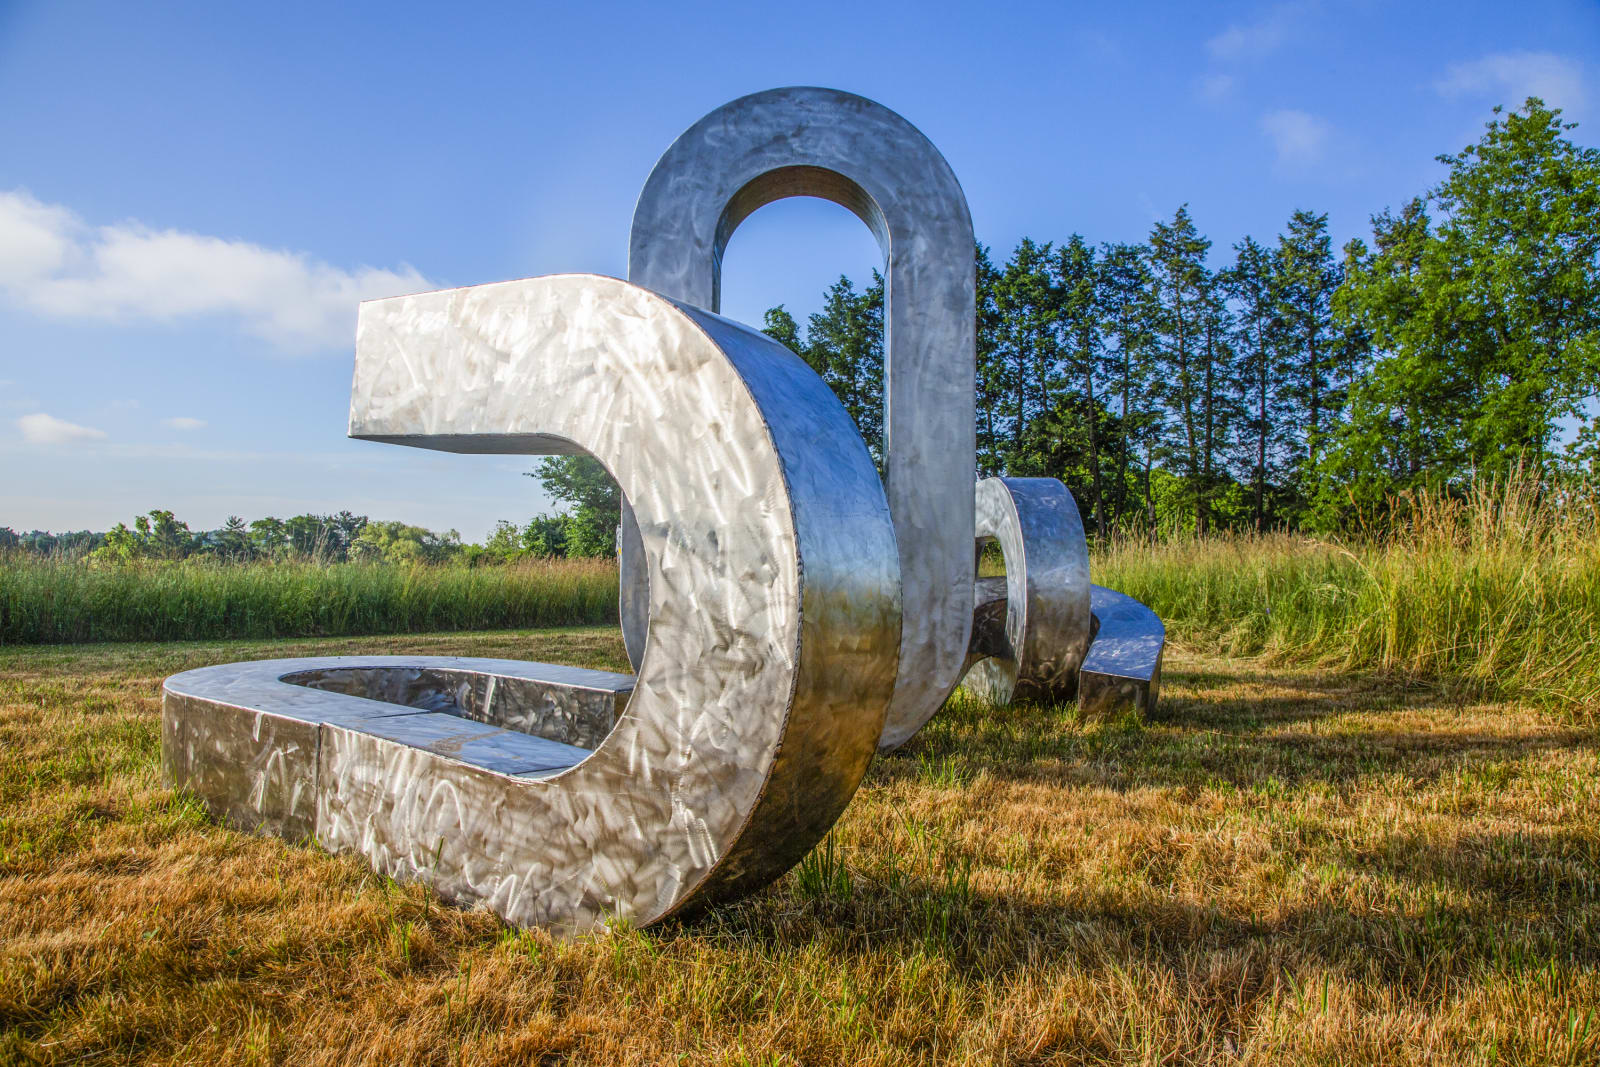 """<div class=""""additional_caption"""">'Song of the Broken Chains', 2020. Stainless steel. Approx. 243.84 x 548.64 x 365.76cm (96 x 216 x 144in)</div>"""